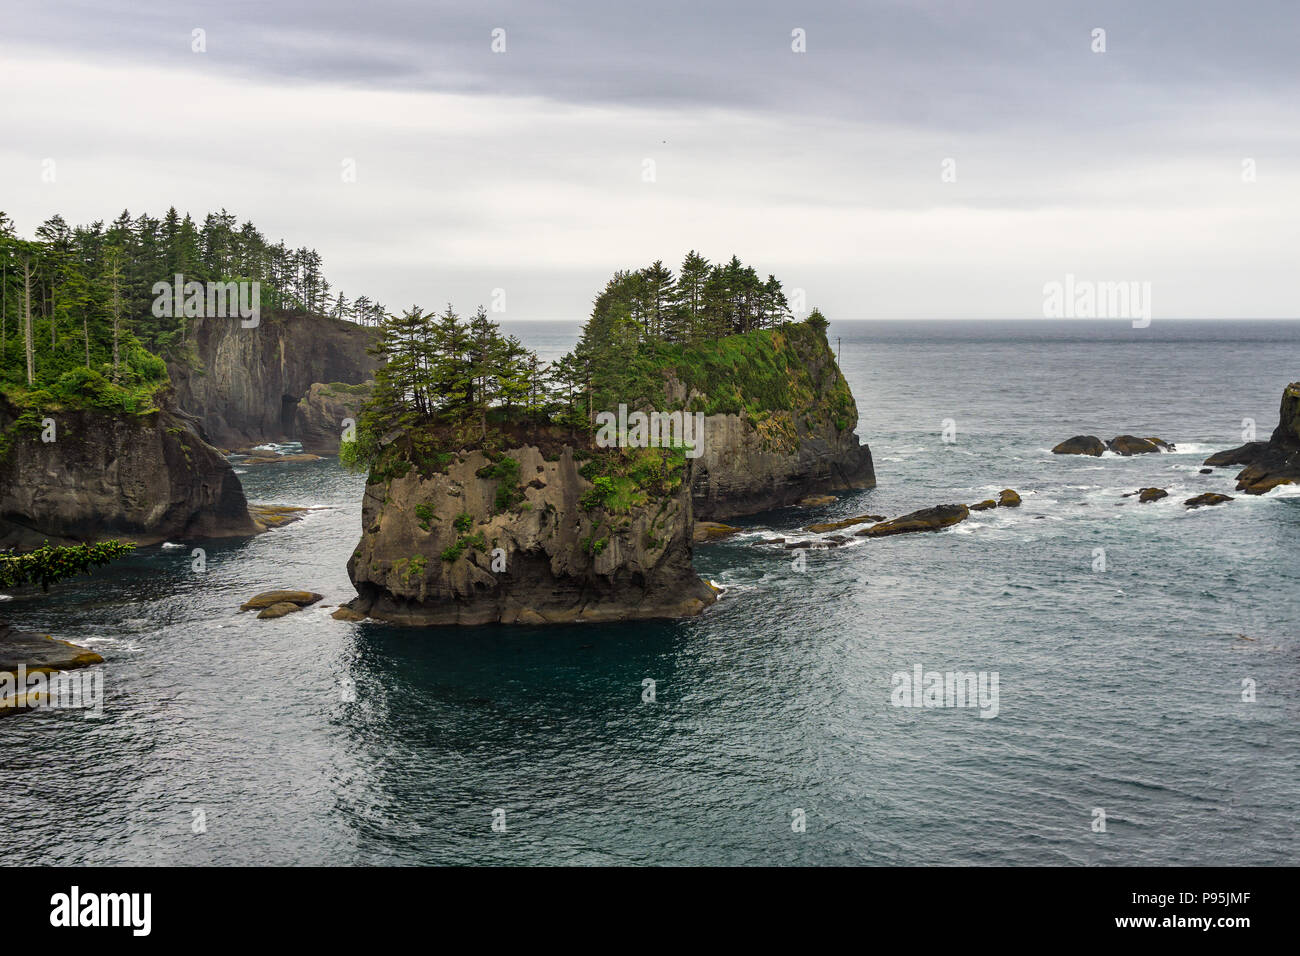 Iconic sea stacks of Cape Flattery, furthest northwest location in the continental US, Makah reservation, Olympic peninsula, Washington State, USA. - Stock Image